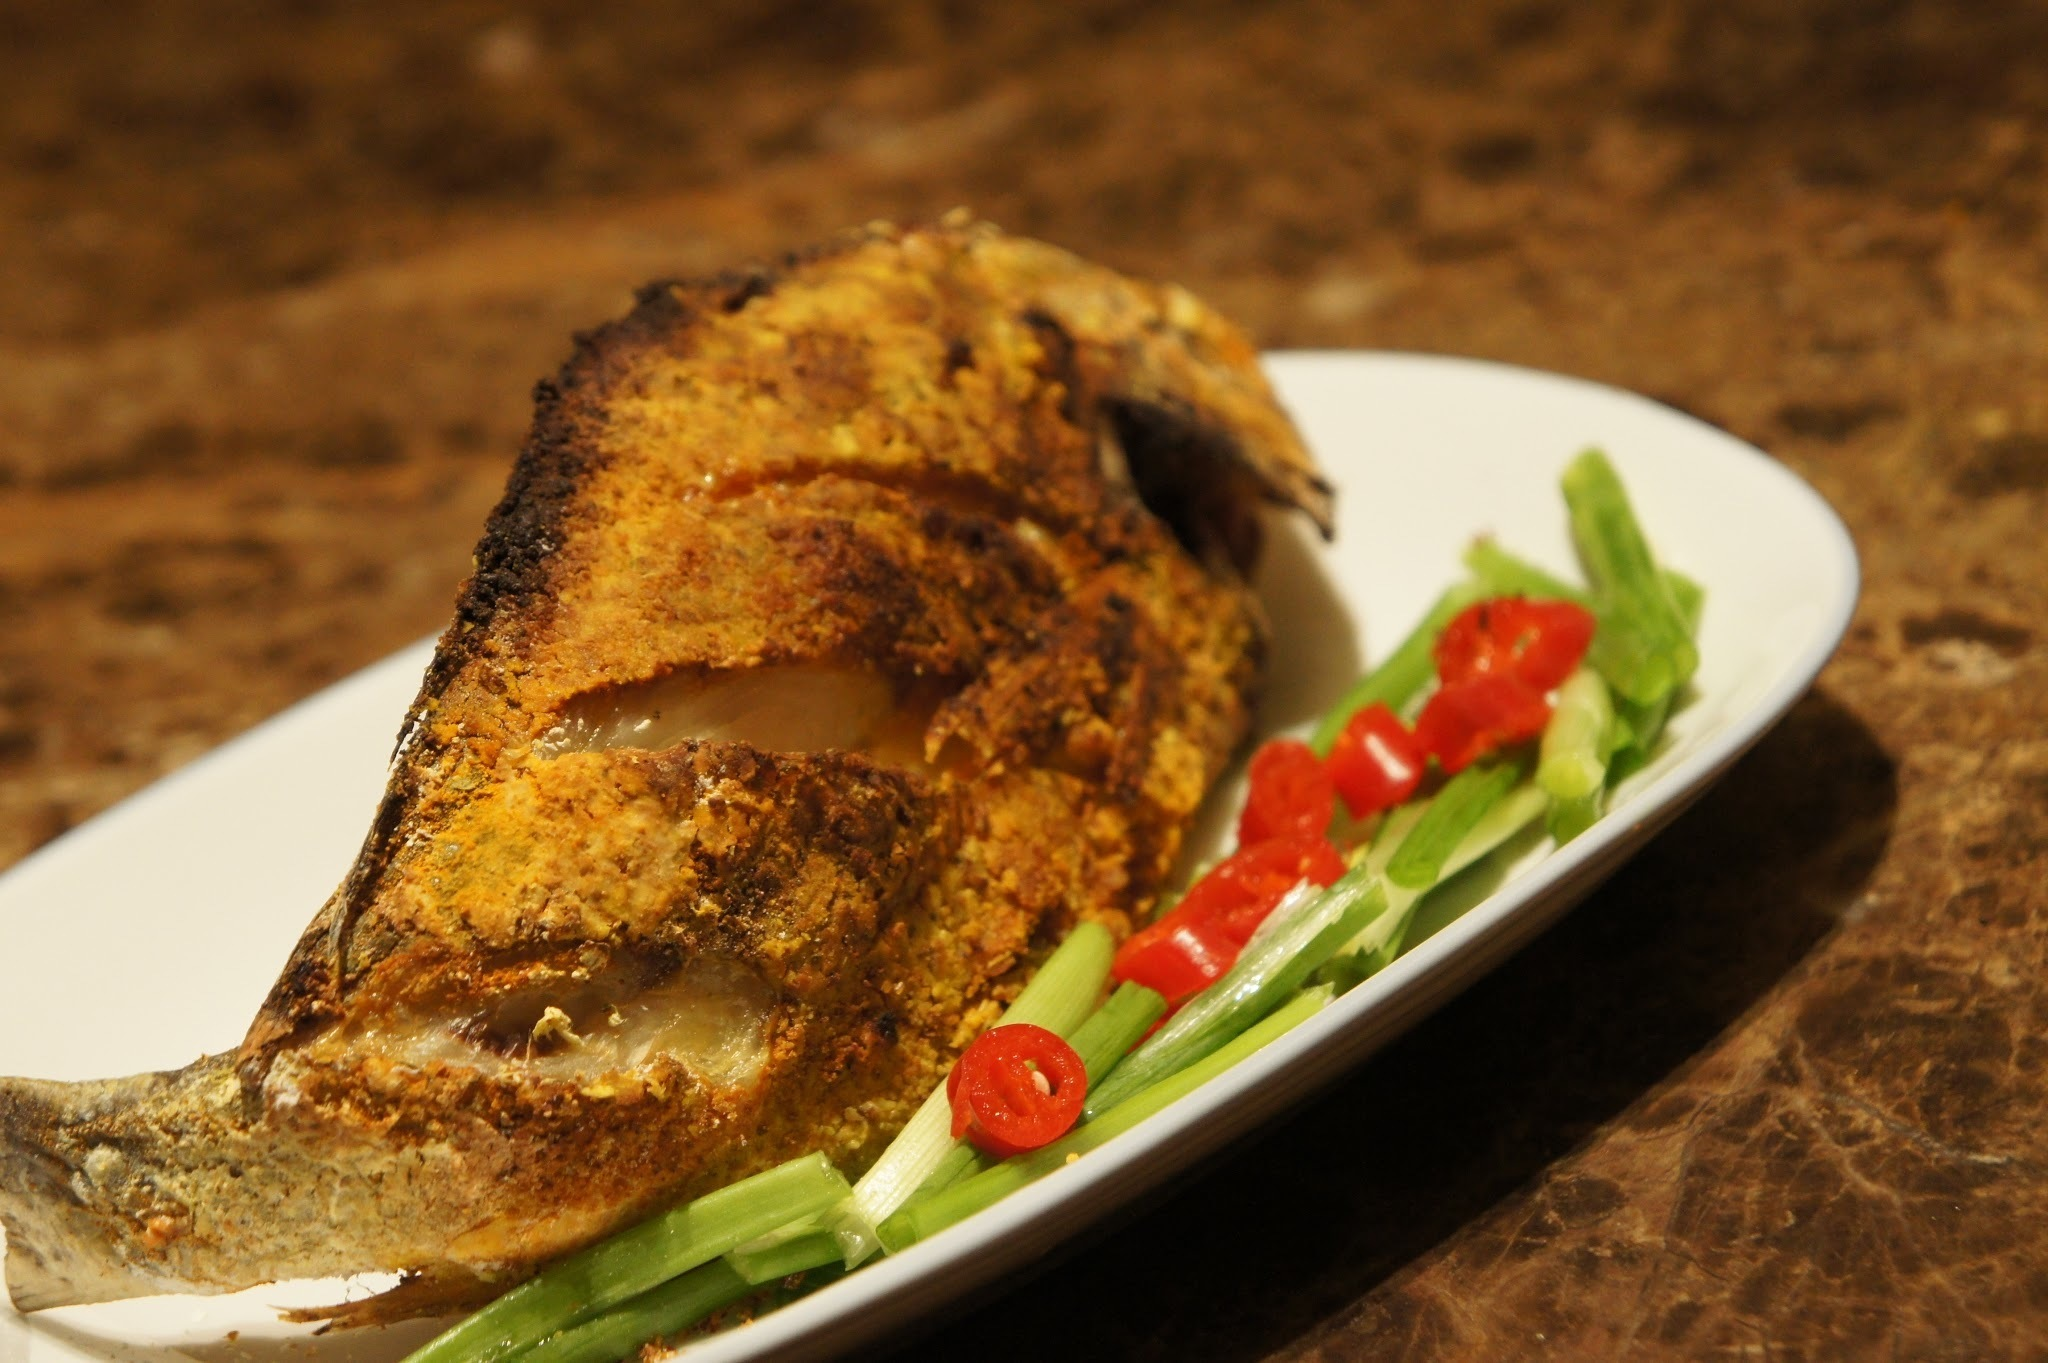 Air-Frying Fun : Tumeric Fried Fish 家常黄姜煎鱼